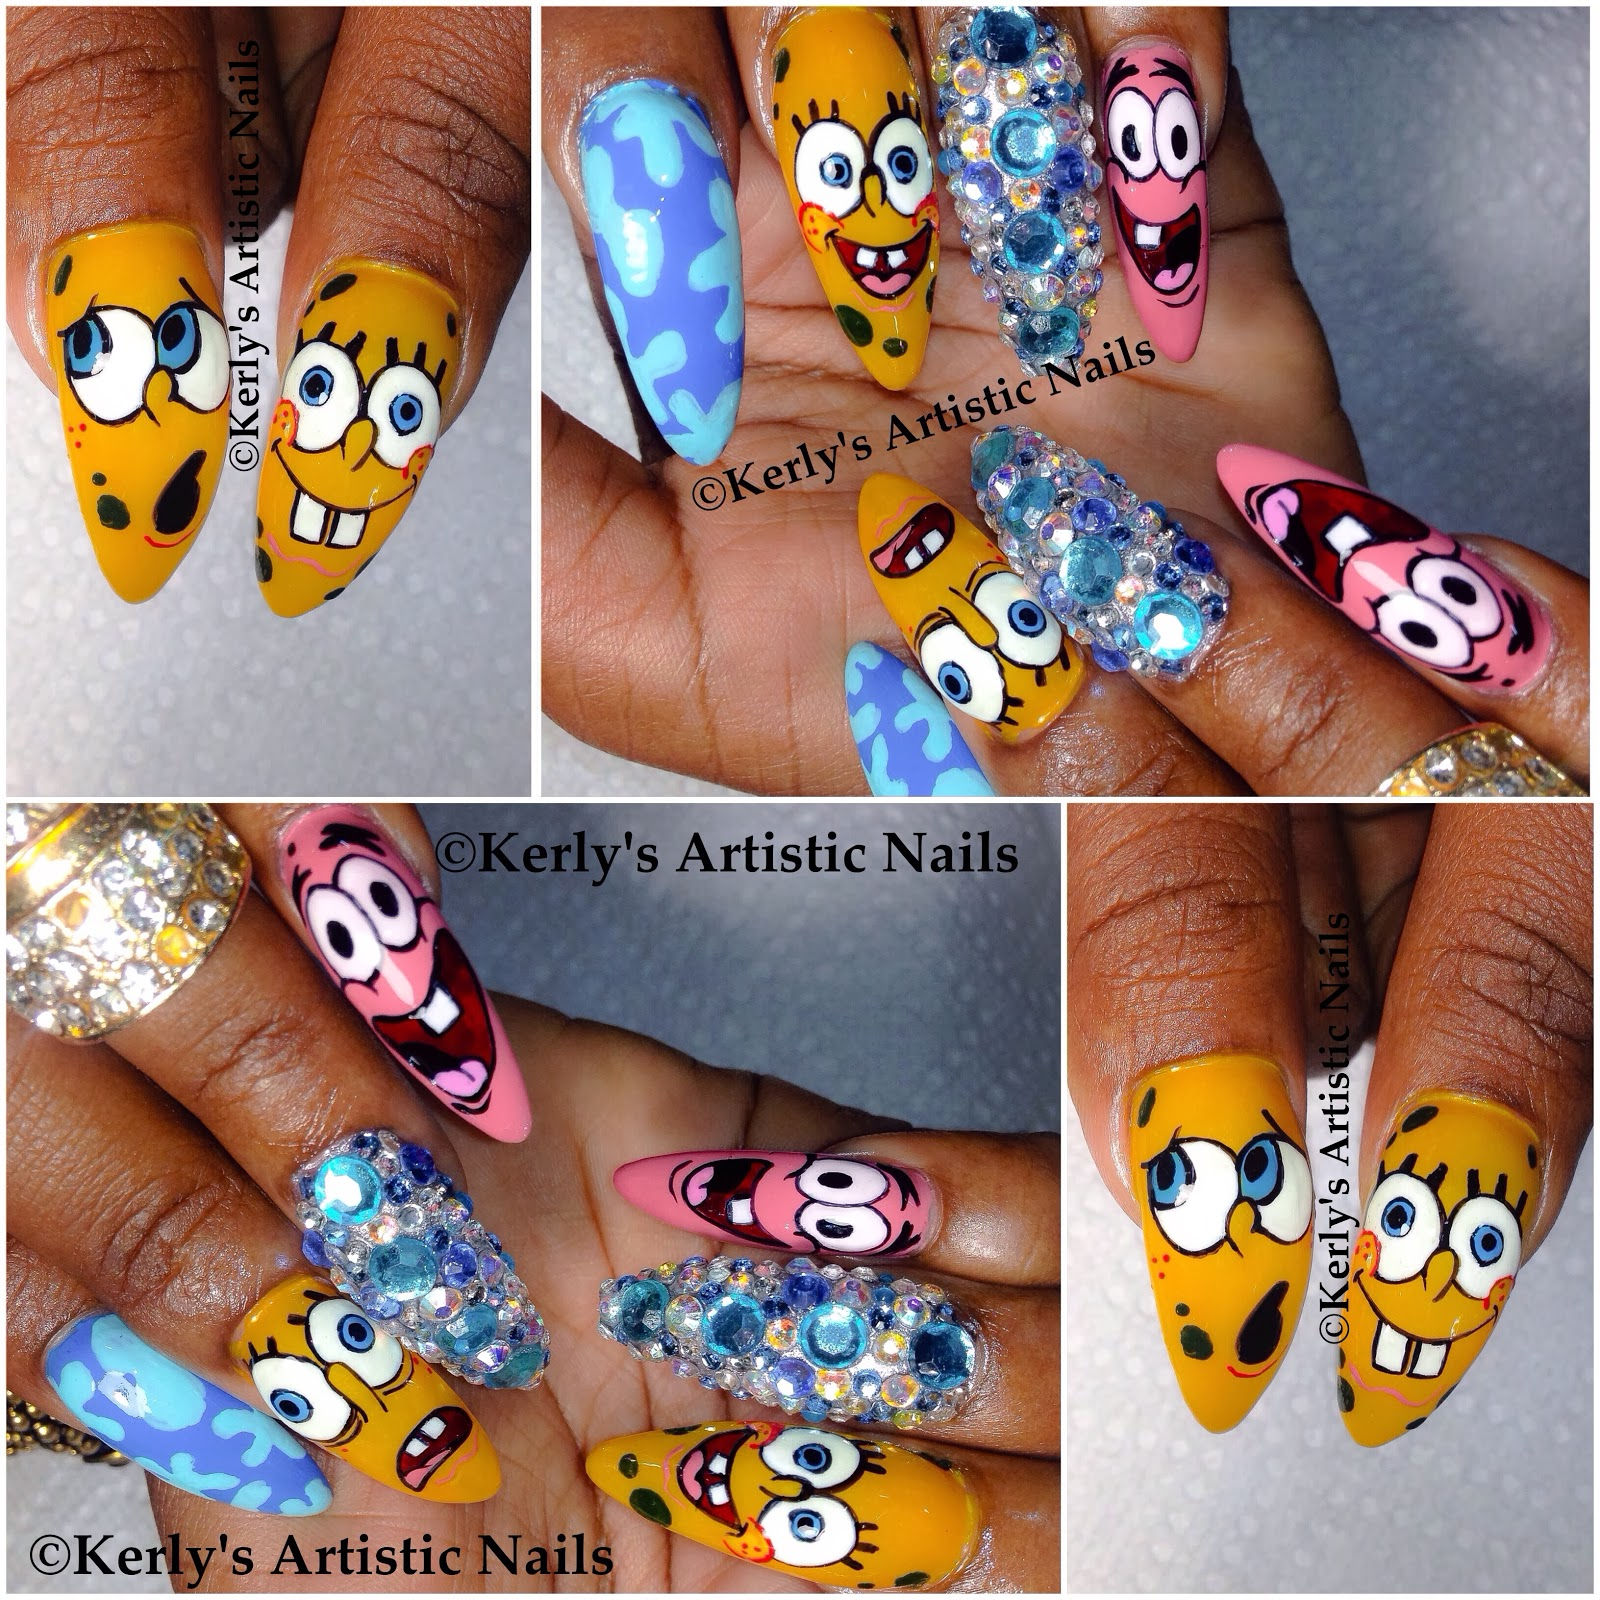 Artistic nail art designs artistic nails artistic nail art kerlys artistic nails spongebob squarepants and patrick nail art artistic nail art designs prinsesfo Image collections